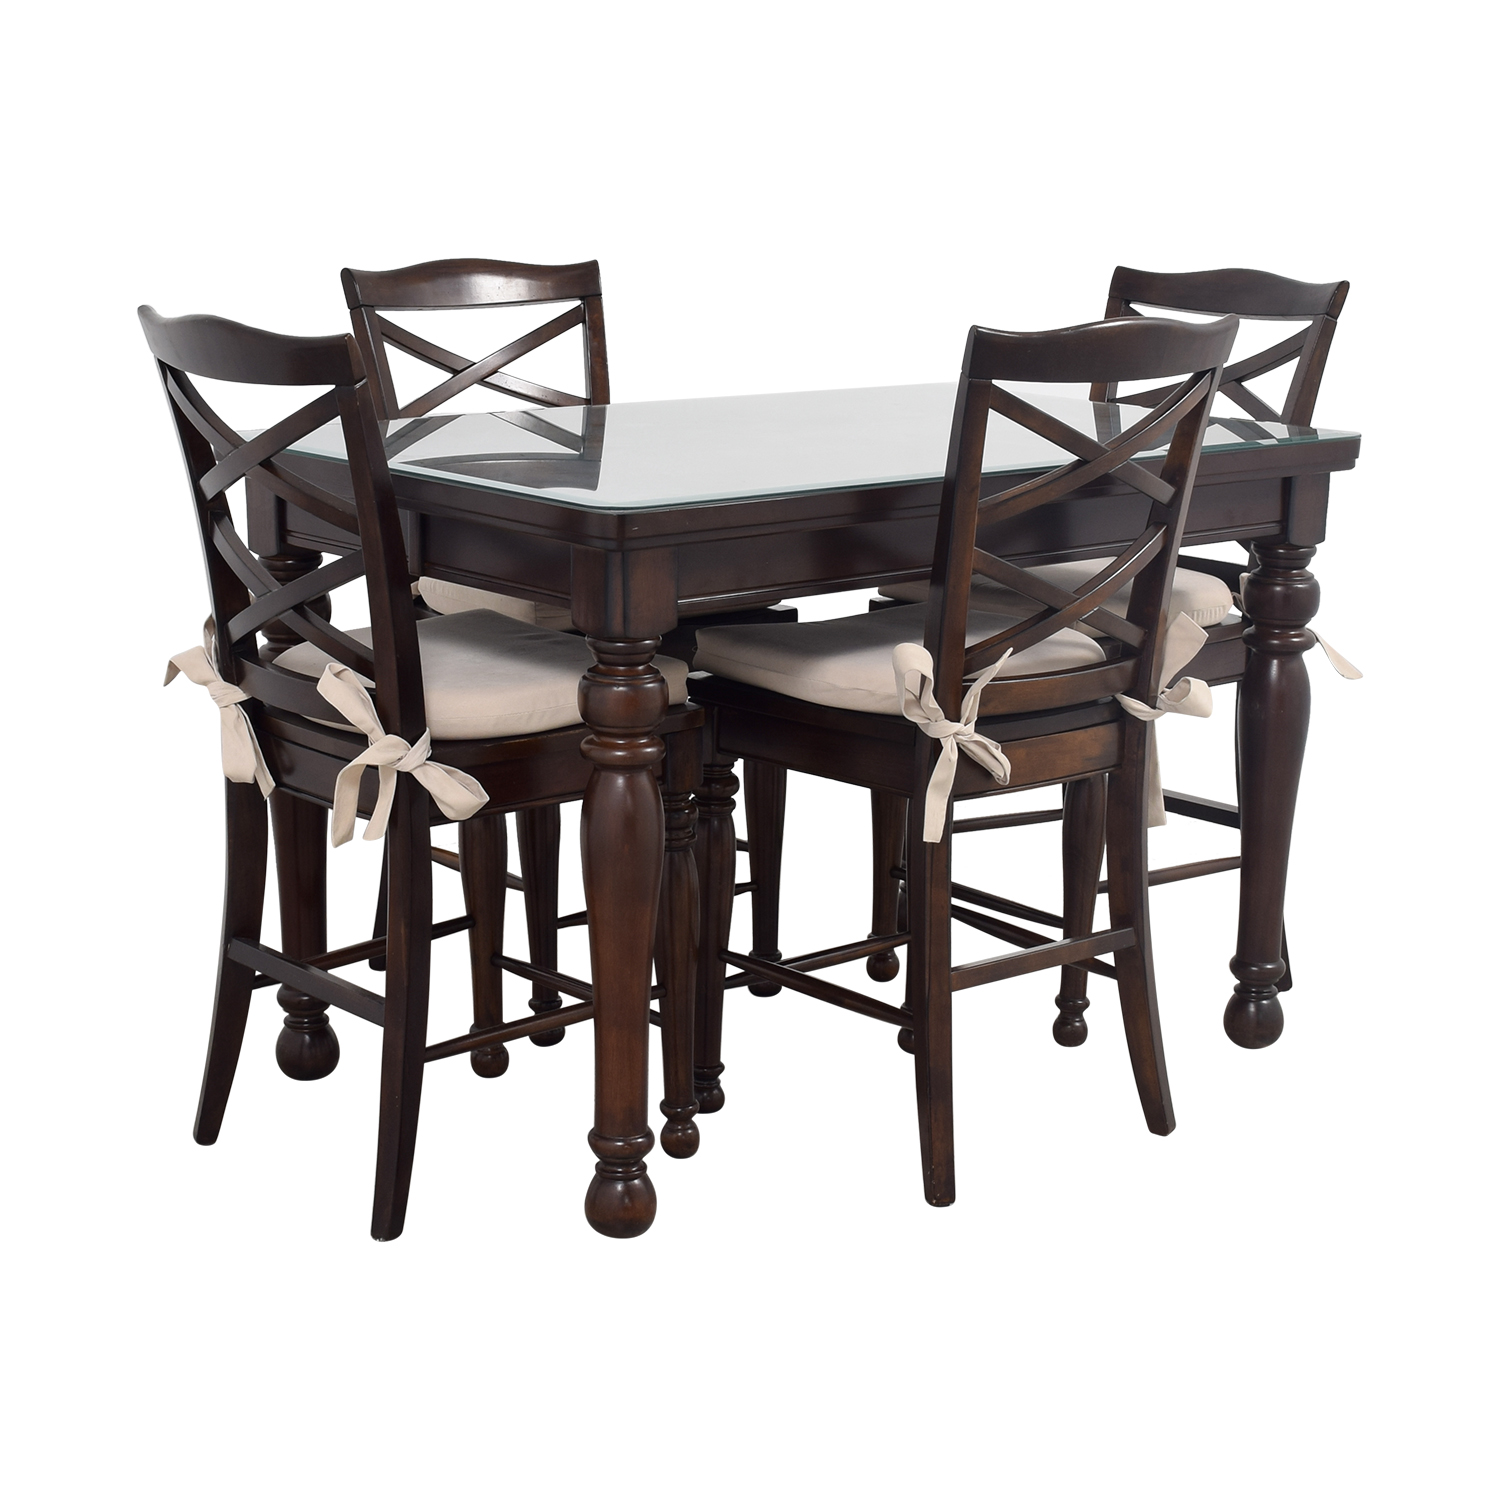 ... Buy Ashley Furniture Dark Wood Dining Set With Seat Cushions Ashley Furniture  Dining Sets ...